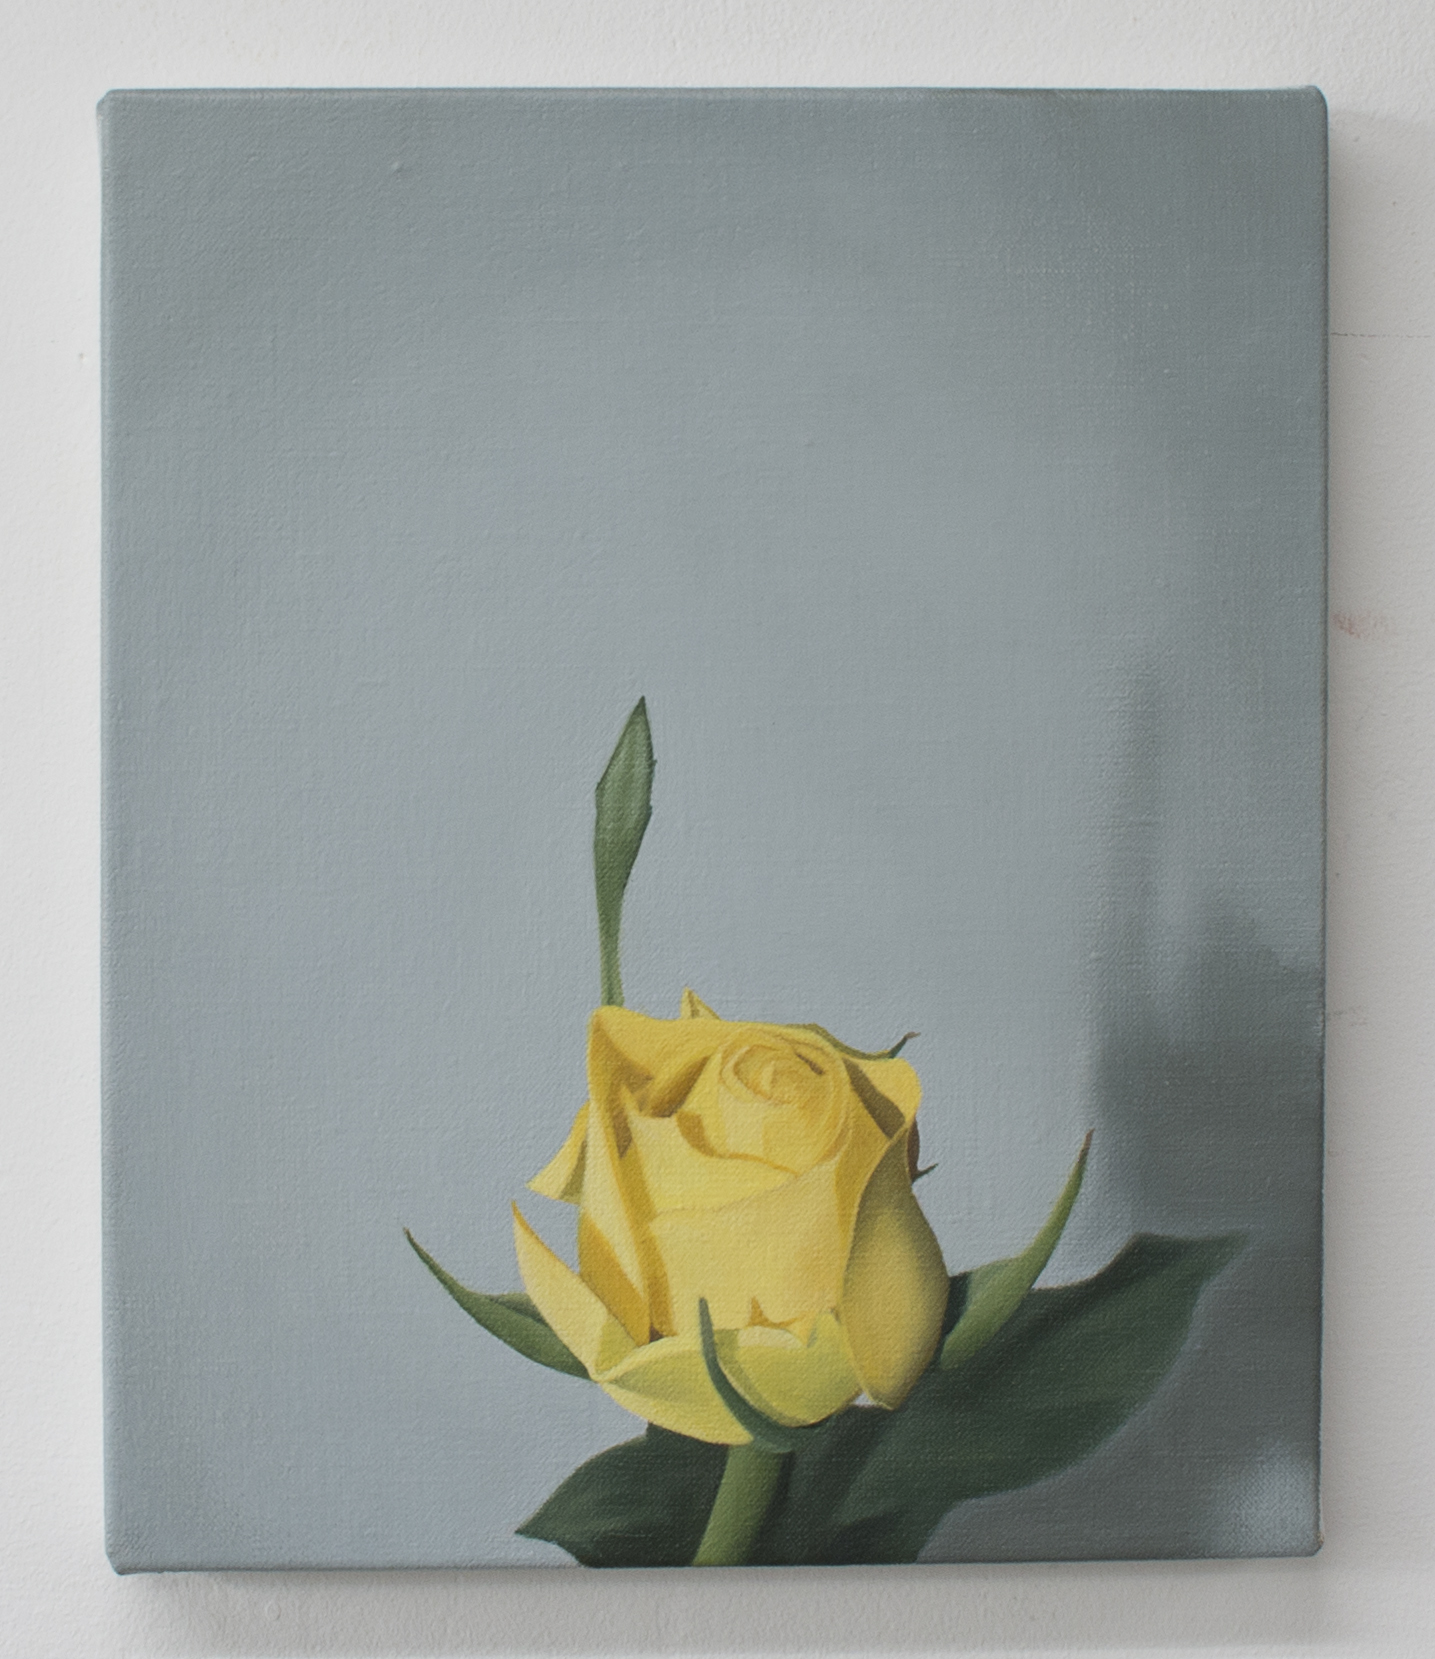 Yellow rose | 2018 | Oil on linen | 30 x 25 cm | OPW Collection IRE